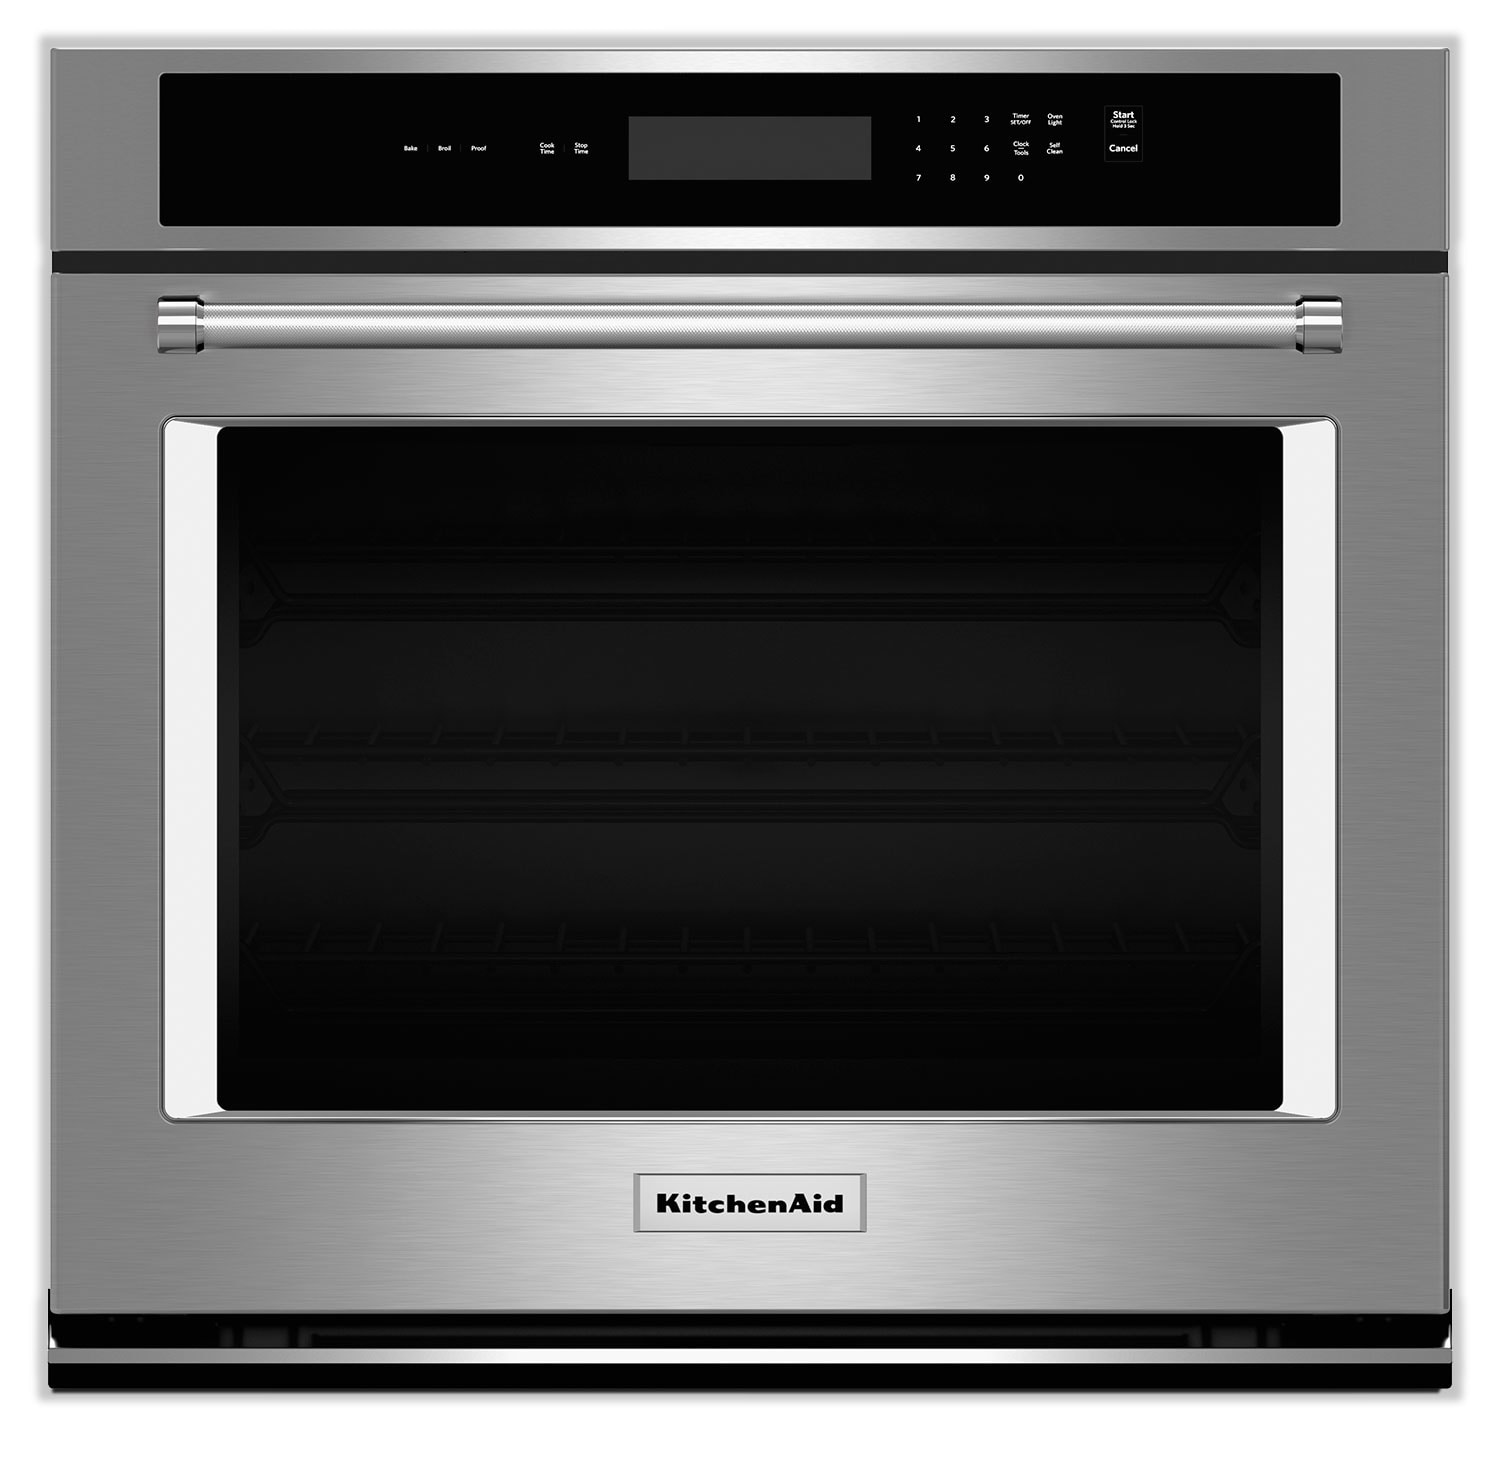 Cooking Products - KitchenAid Stainless Steel Wall Oven (4.3 Cu. Ft.) - KOST107ESS